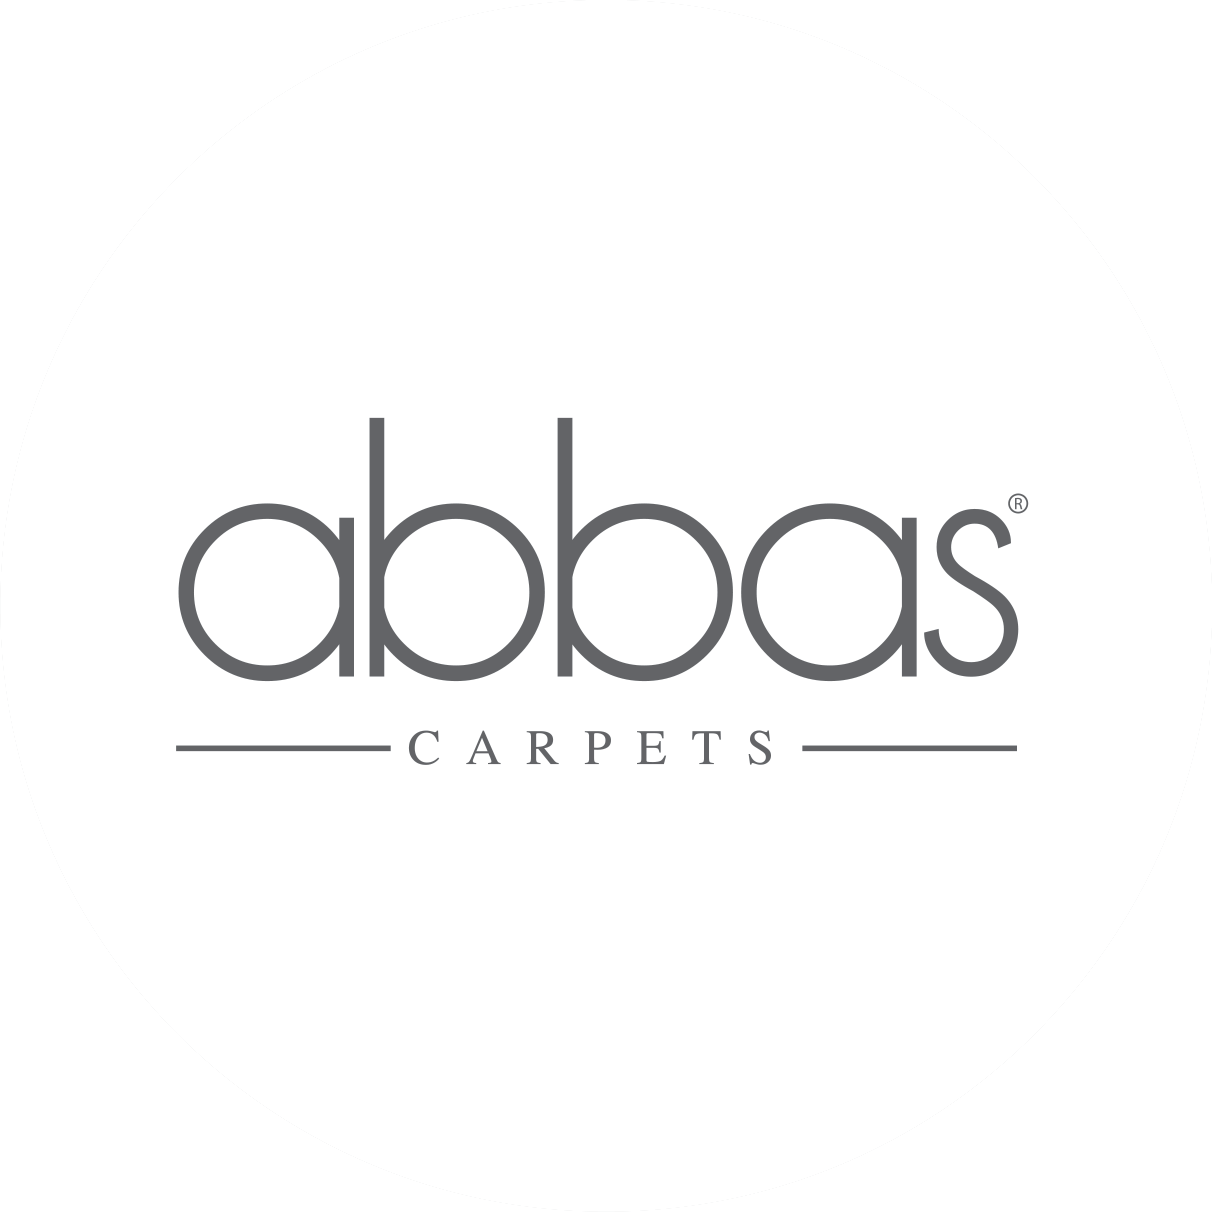 Quality Rugs | Best Carpets | Luxury Carpets & Rugs - Abbas